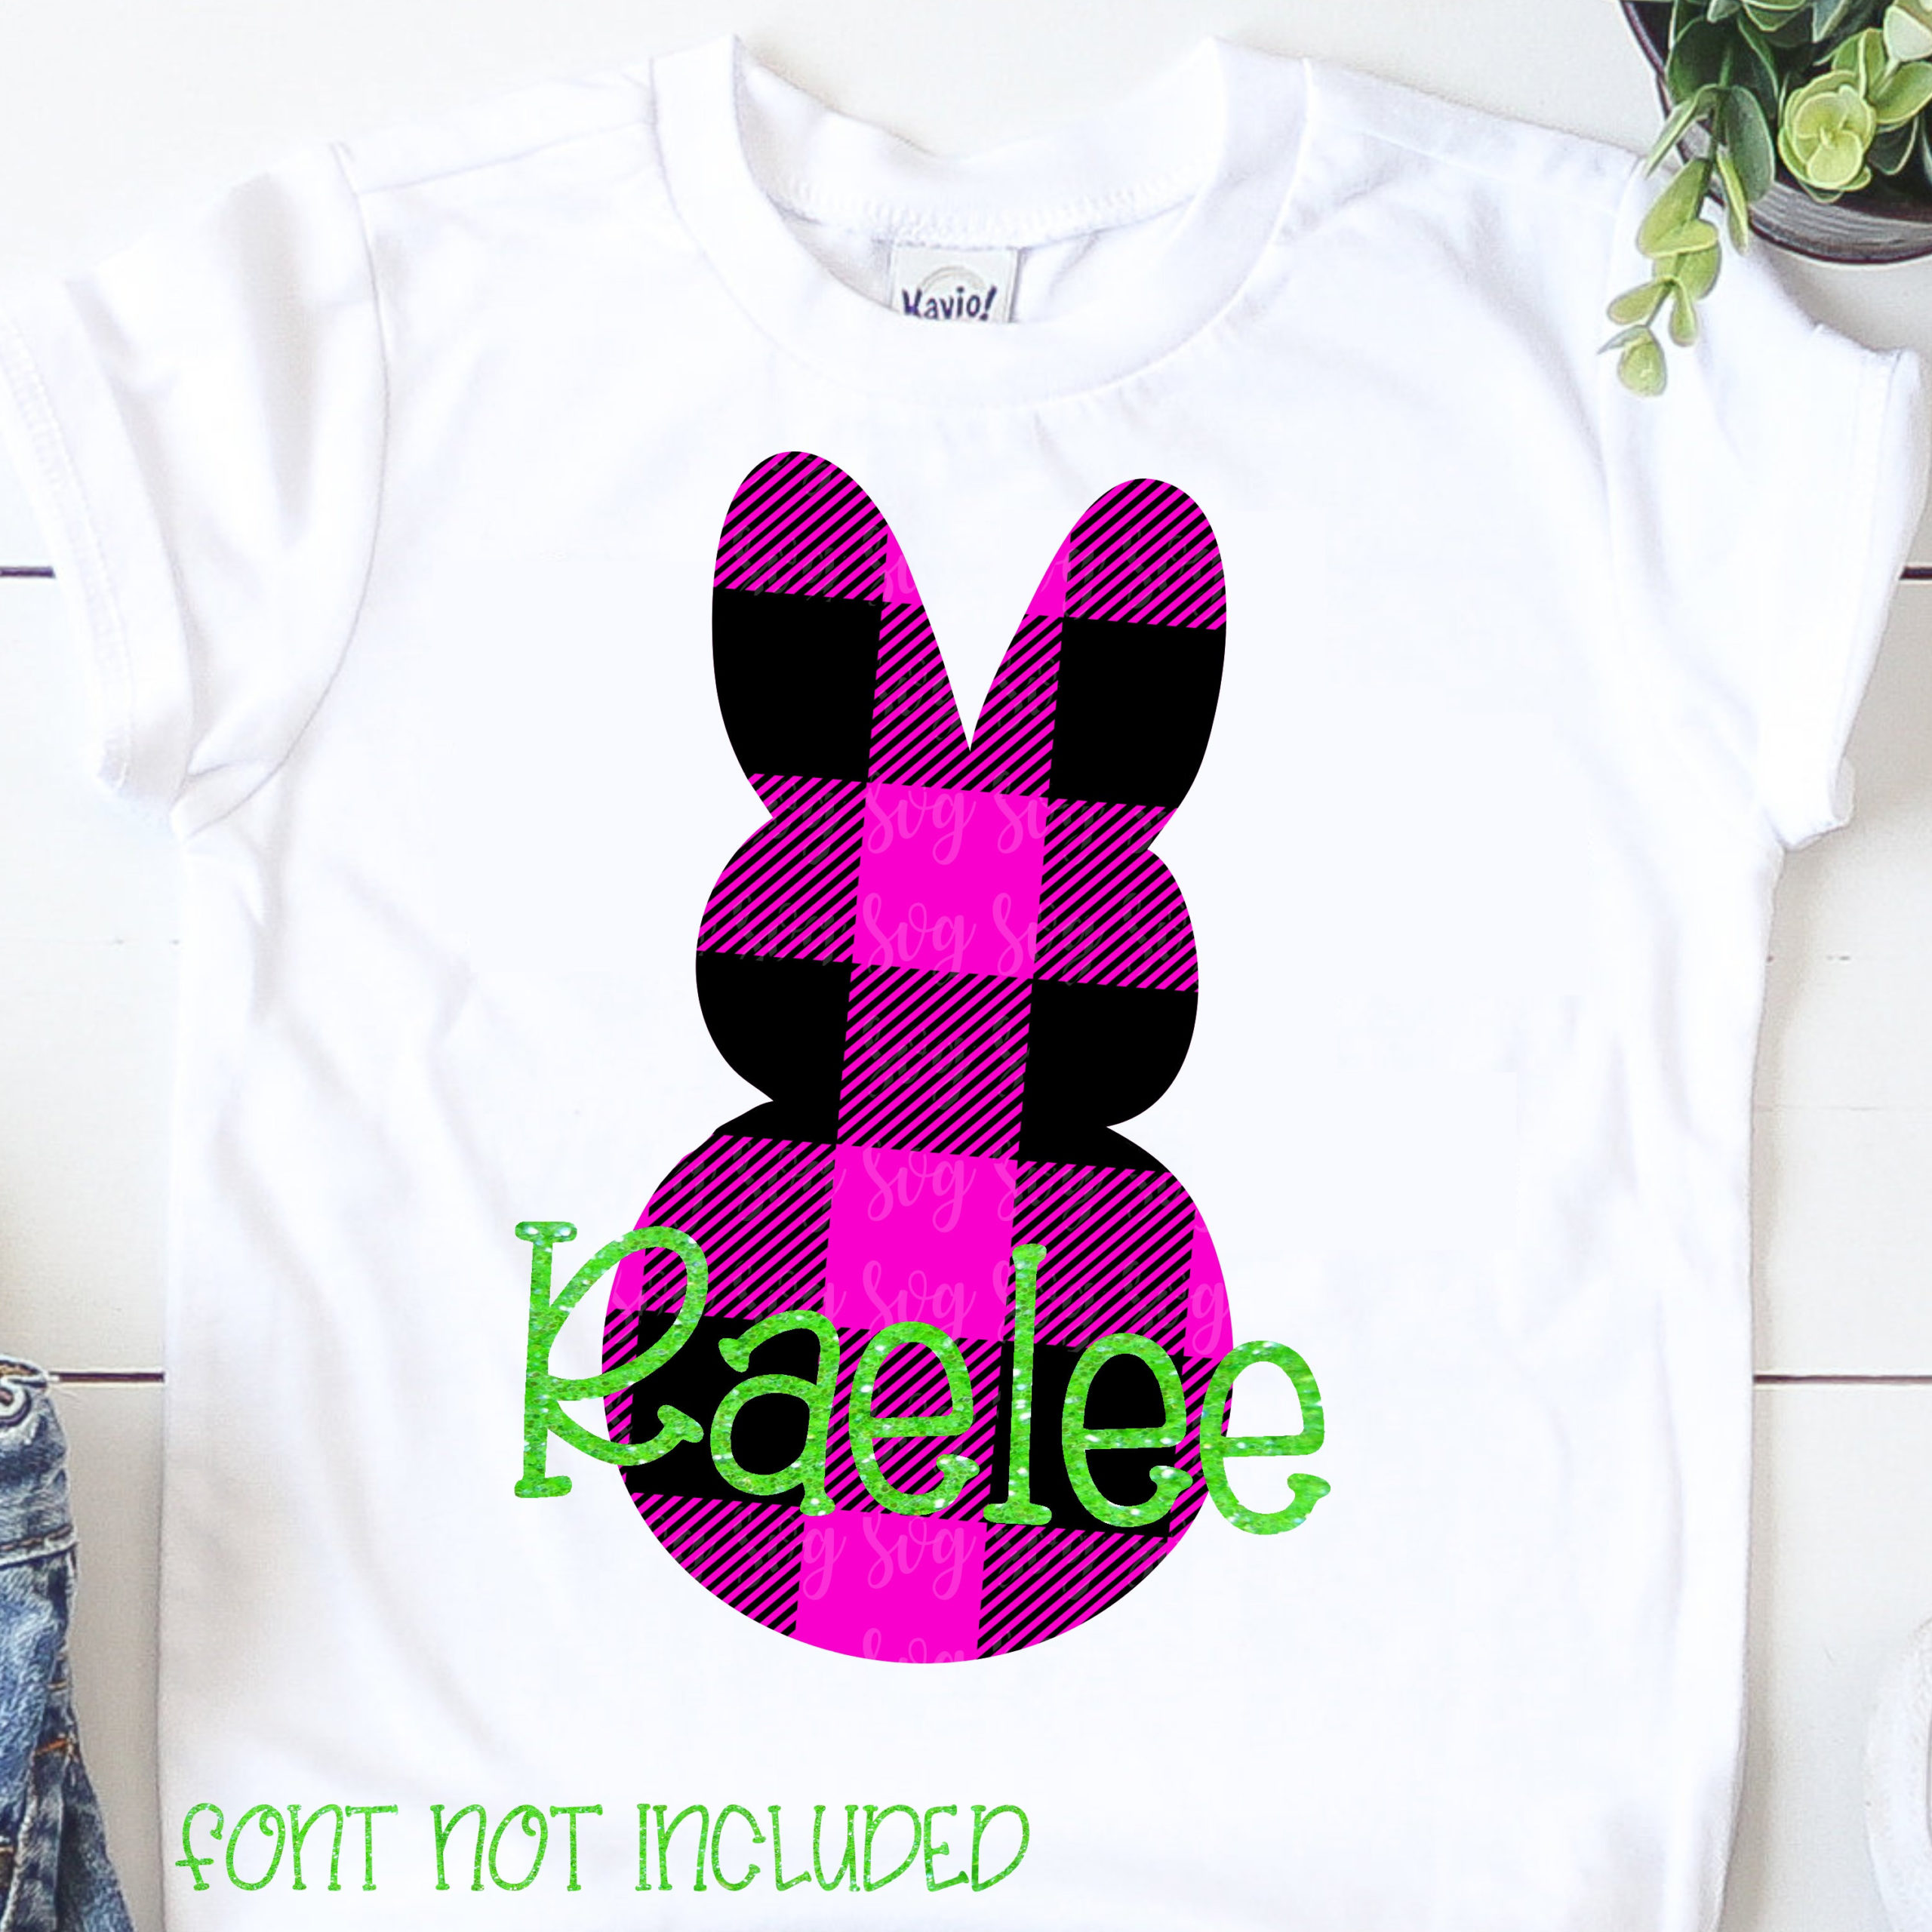 Easter-svg-plaid-peep-svg-dxf-png-eps-files-for-cutting-machines-cameo-cricut-easter-day-svg-designs-easter-day-cut-file-cricut-svg-60512a29